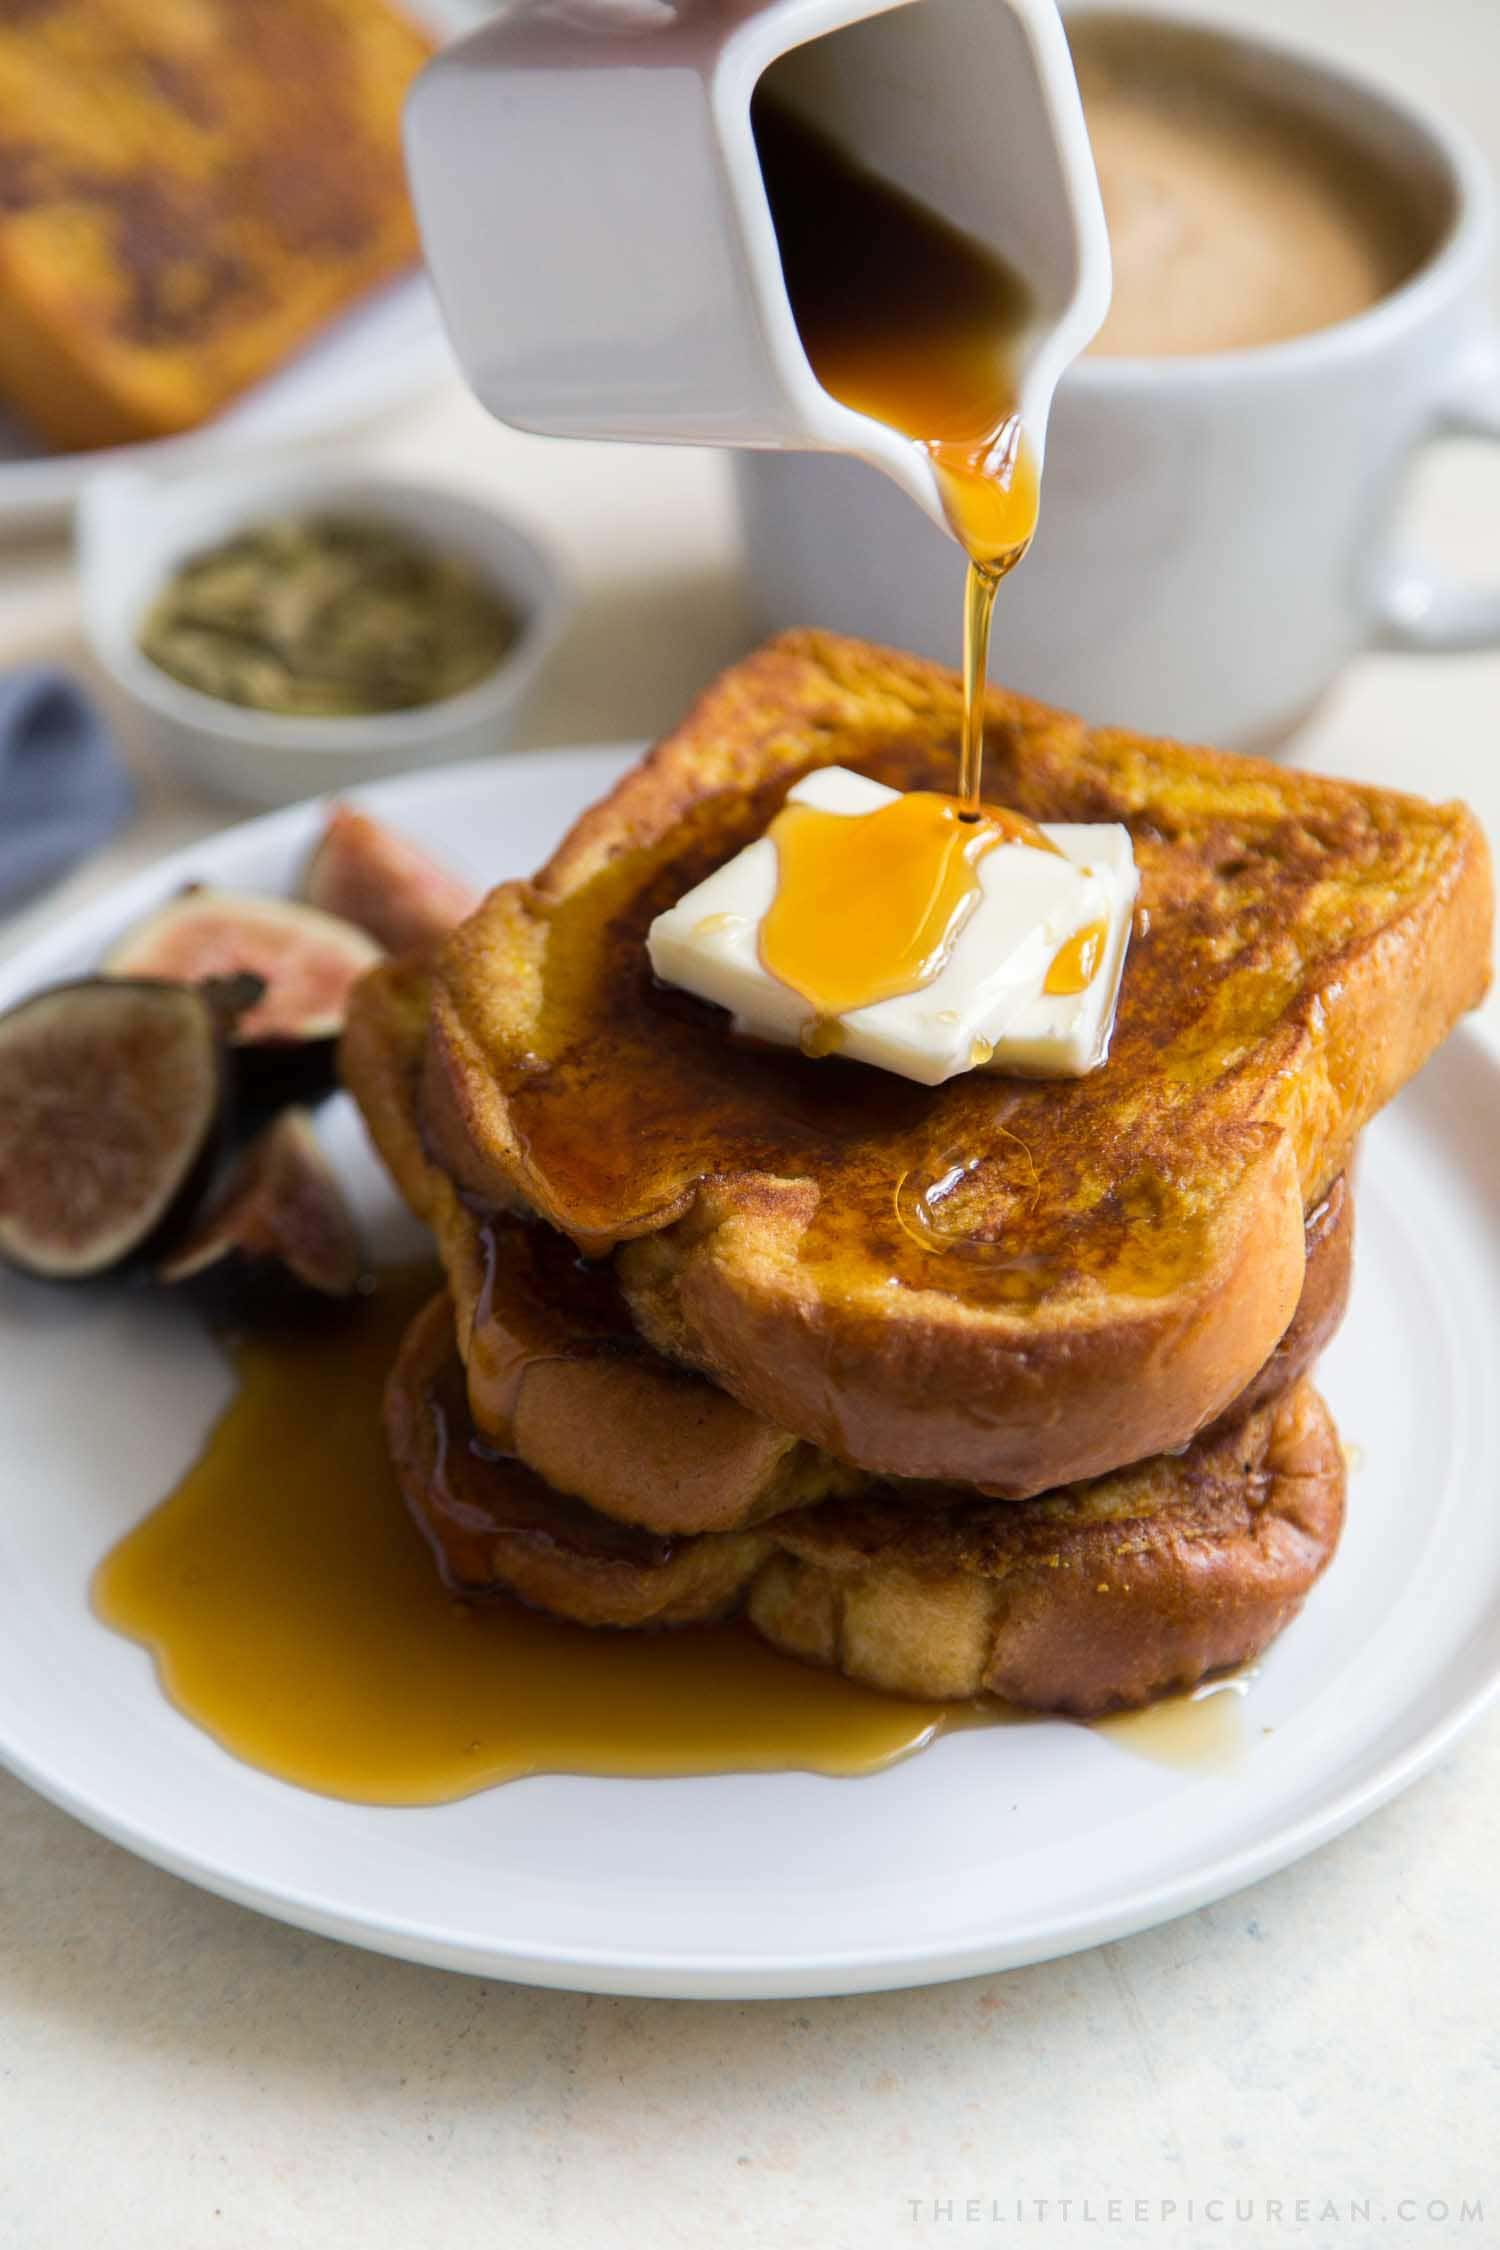 Pumpkin French Toast The Little Epicurean